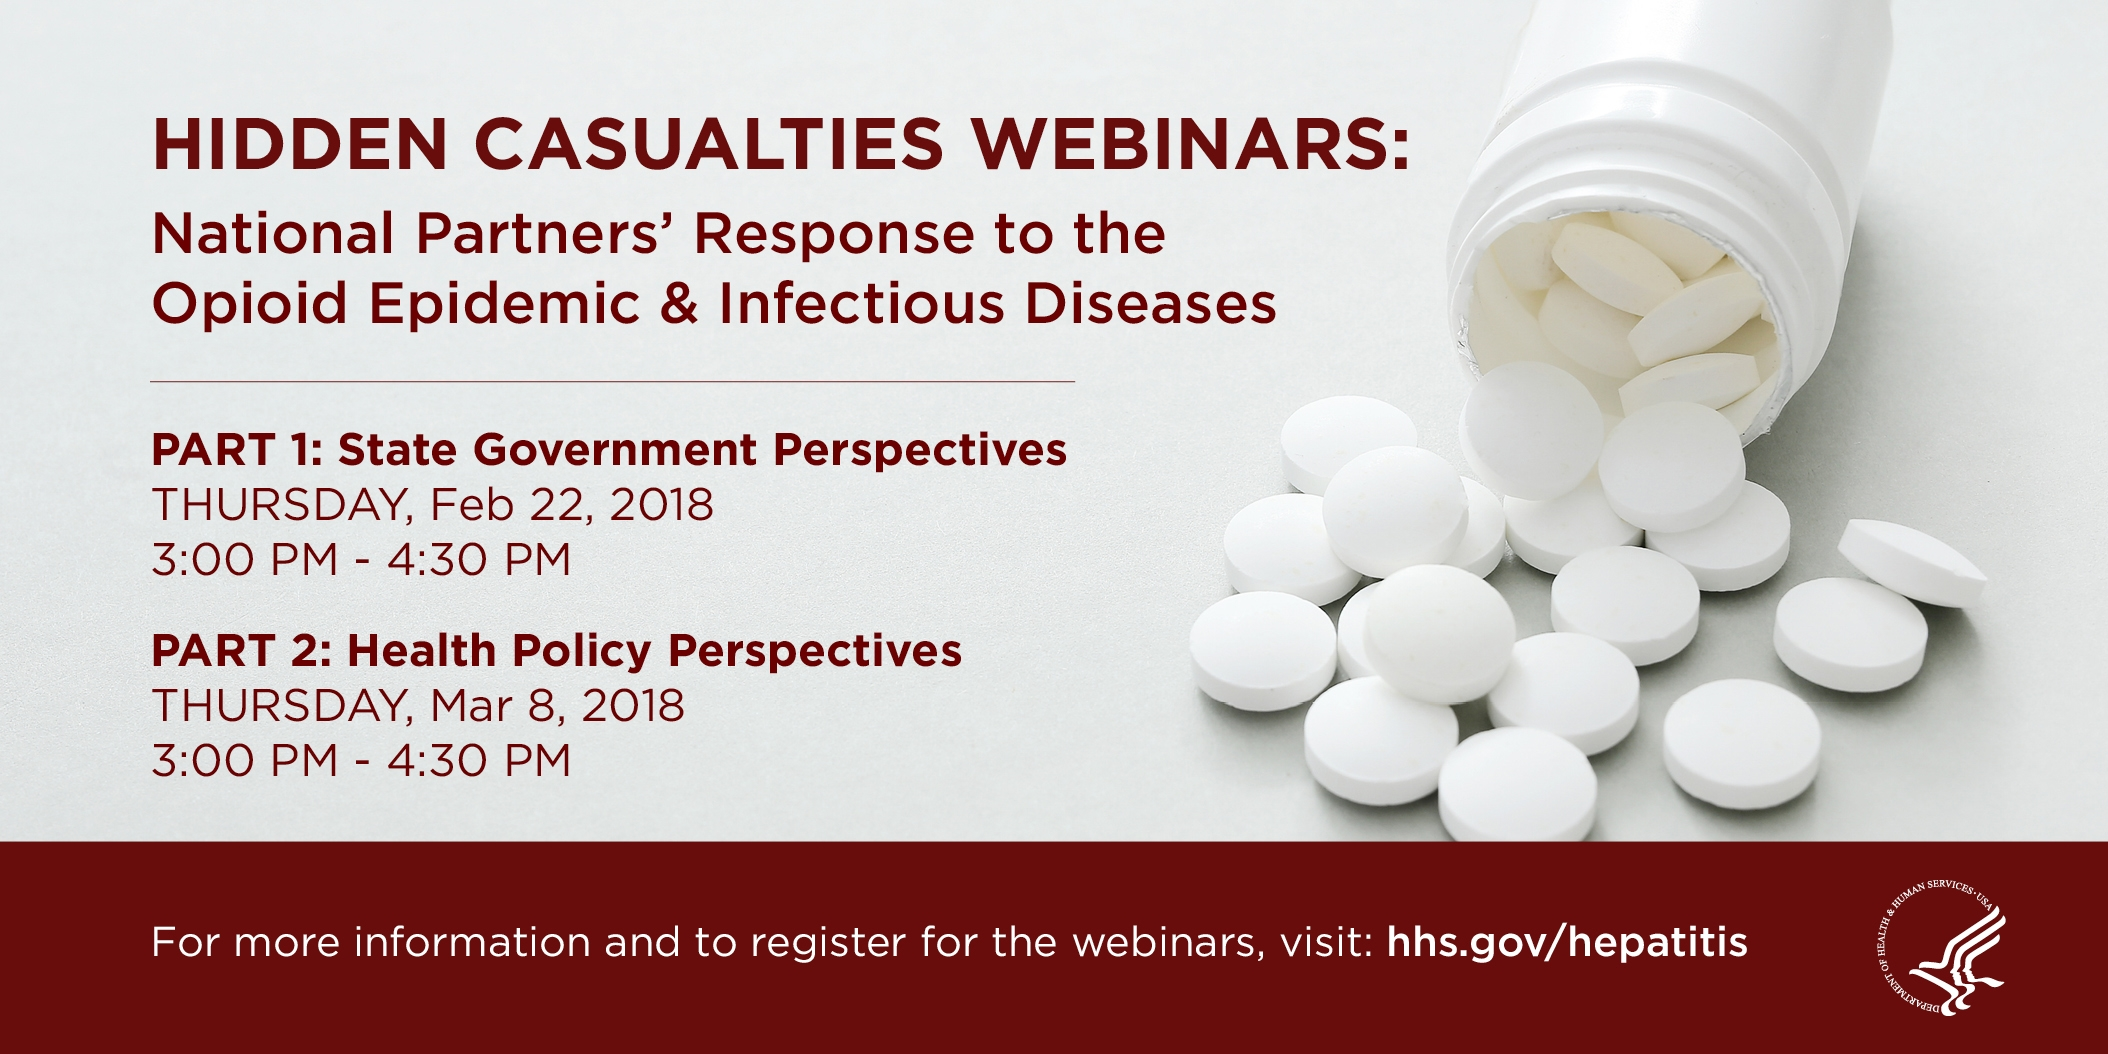 Banner image featuring a spilled bottle of pills and soem details on the upcoming webinars. See the body text for more info.